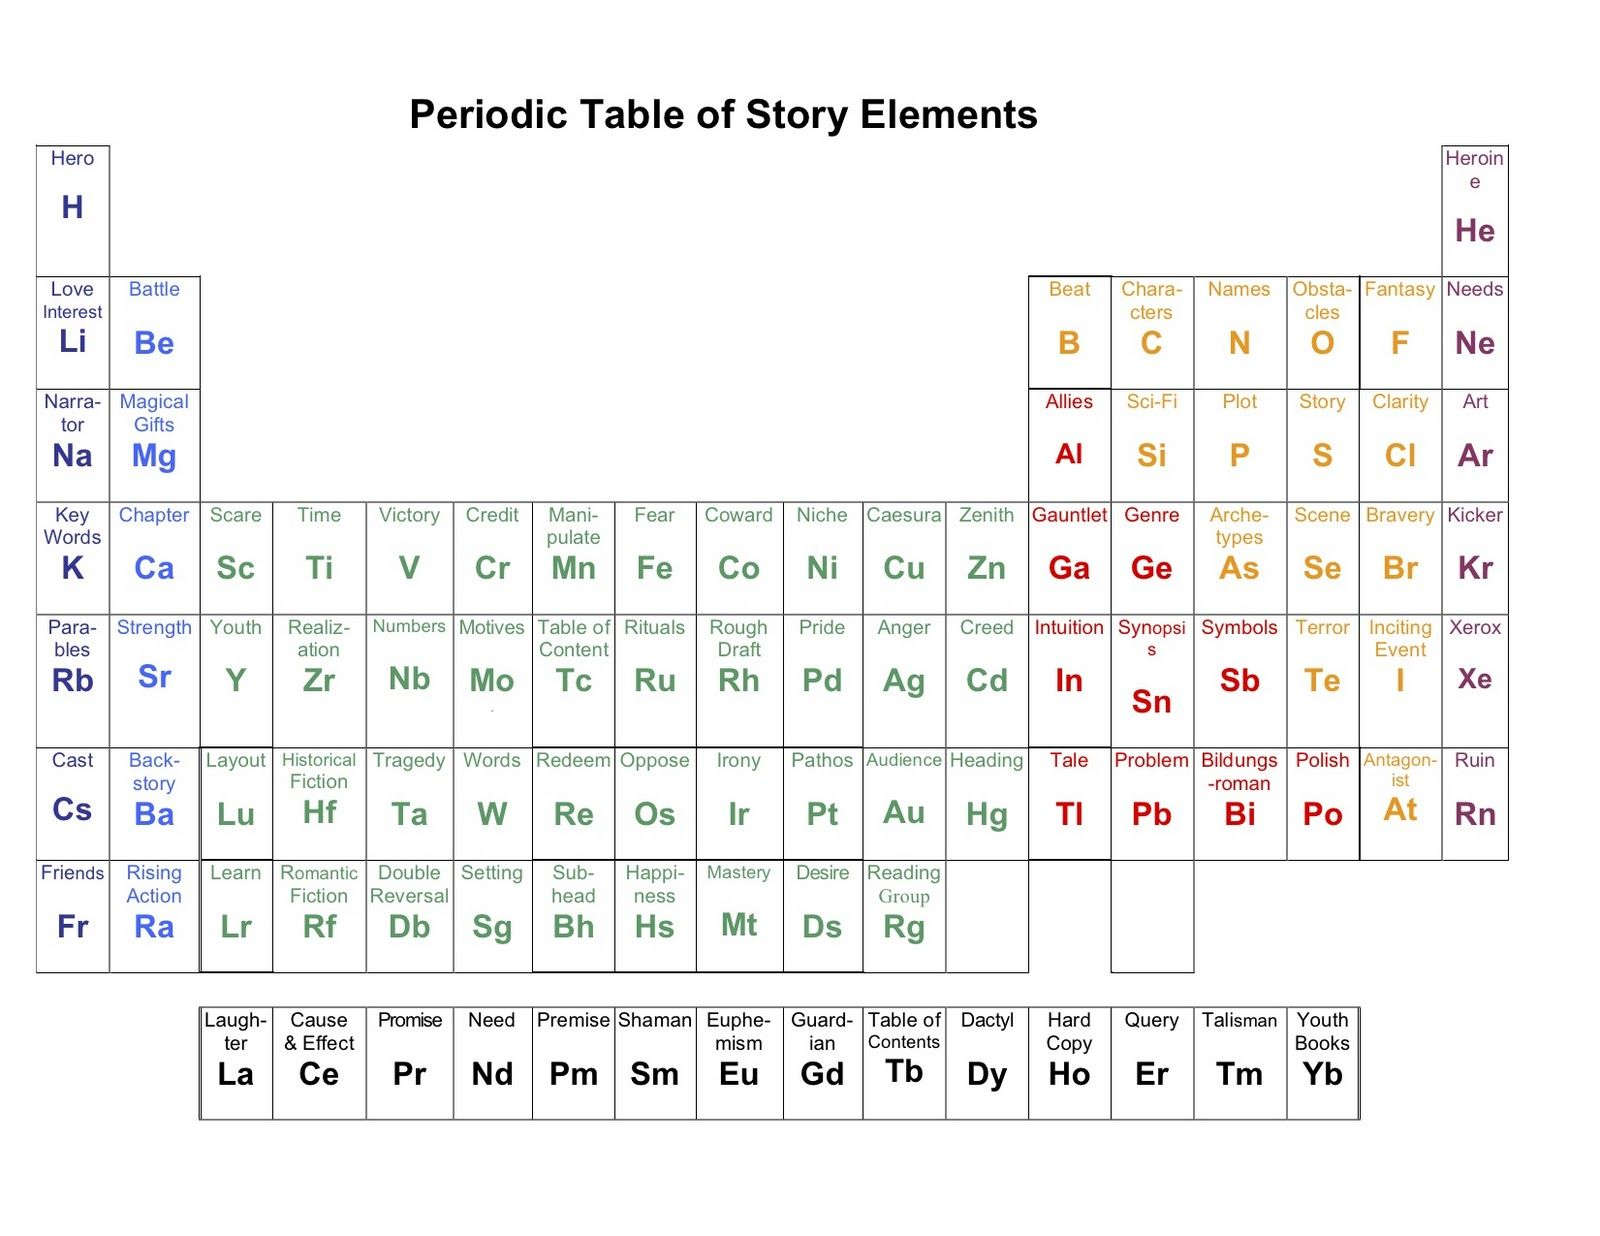 Periodic table of story elements writing tips pinterest story periodic table of story elements writing tips pinterest story elements and periodic table urtaz Gallery